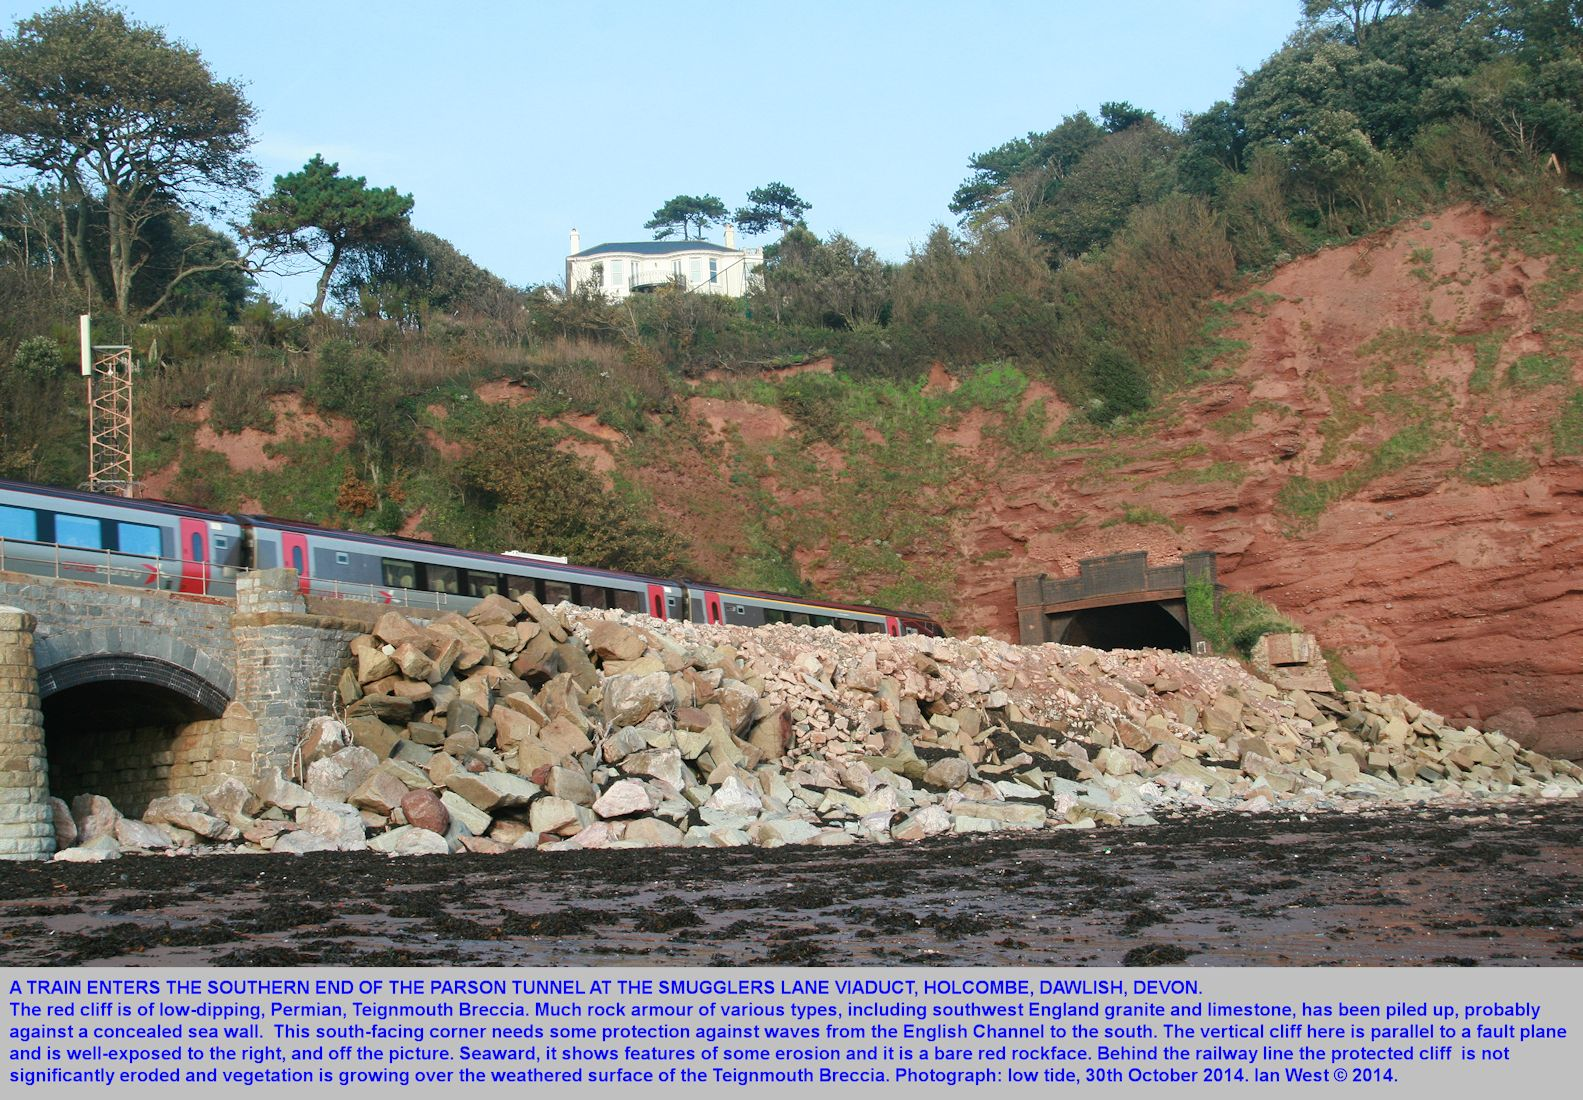 A train is about to enter the southern end of the Parson Tunnel at the Smugglers Lane Viaduct, Holcombe, Dawlish, Devon, southern England, 30th October 2014, by Ian West